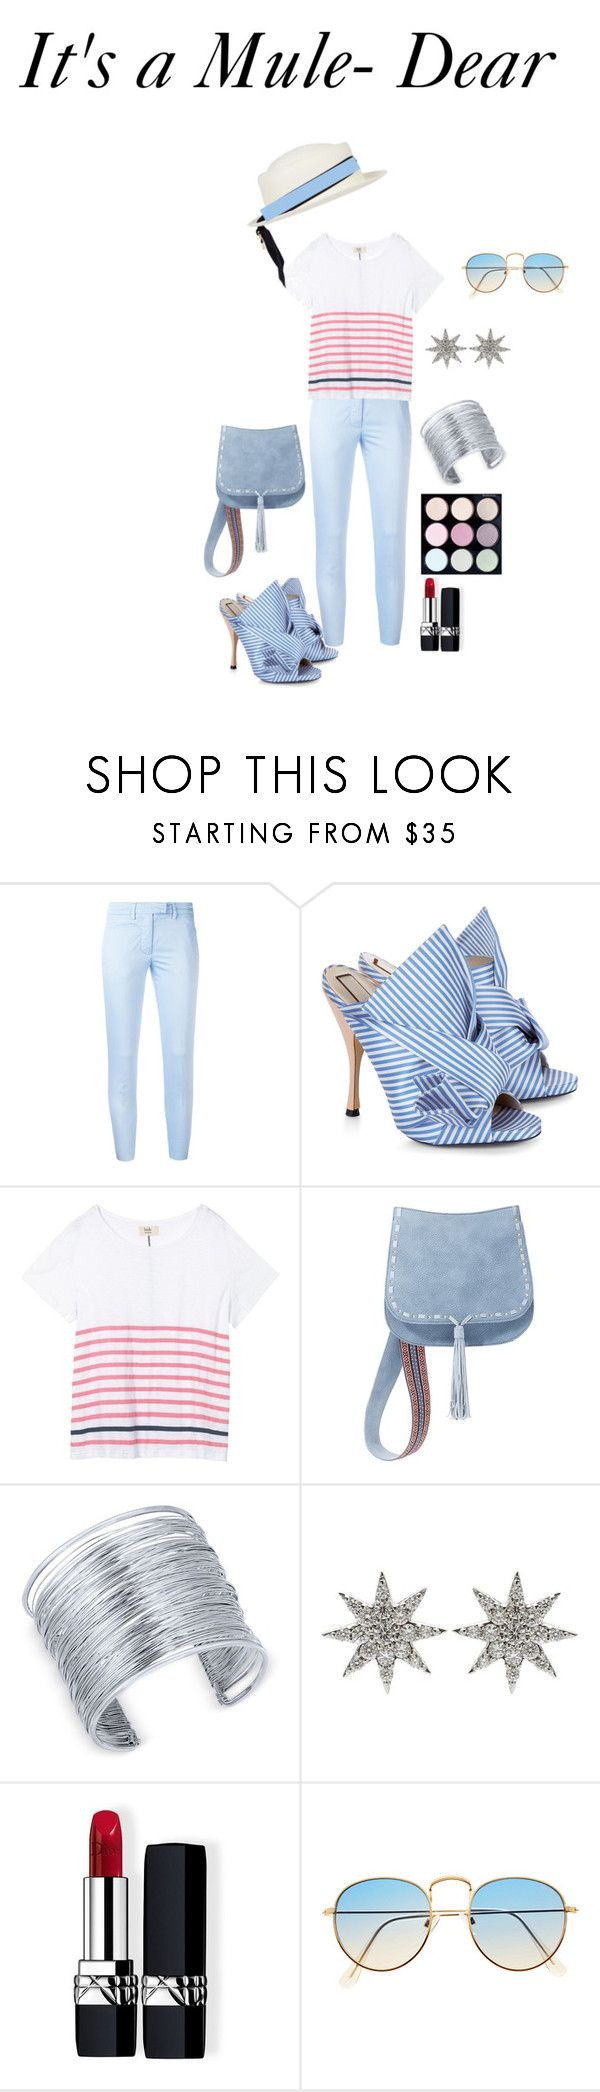 """""""No. 21 Blue and White Mule Shoes"""" by scoutmass on Polyvore featuring Dondup, N°21, Hush, Steve Madden, INC International Concepts, Bee Goddess, Christian Dior and Federica Moretti"""